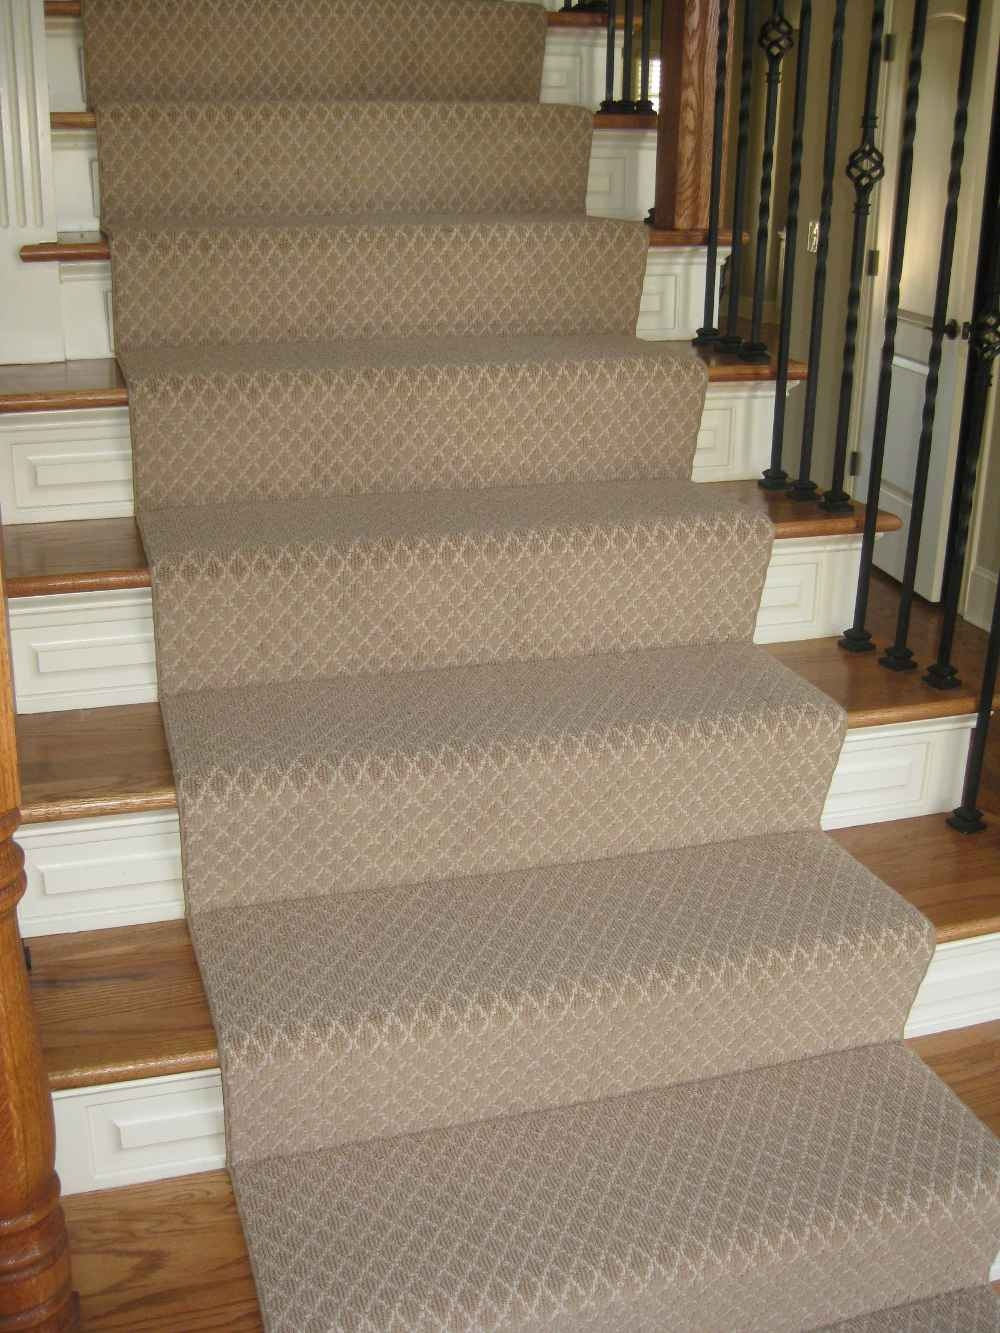 Keep Plastic Carpet Runners For Stairs Interior Home Design Throughout Stair Tread Carpet Rods (#14 of 20)